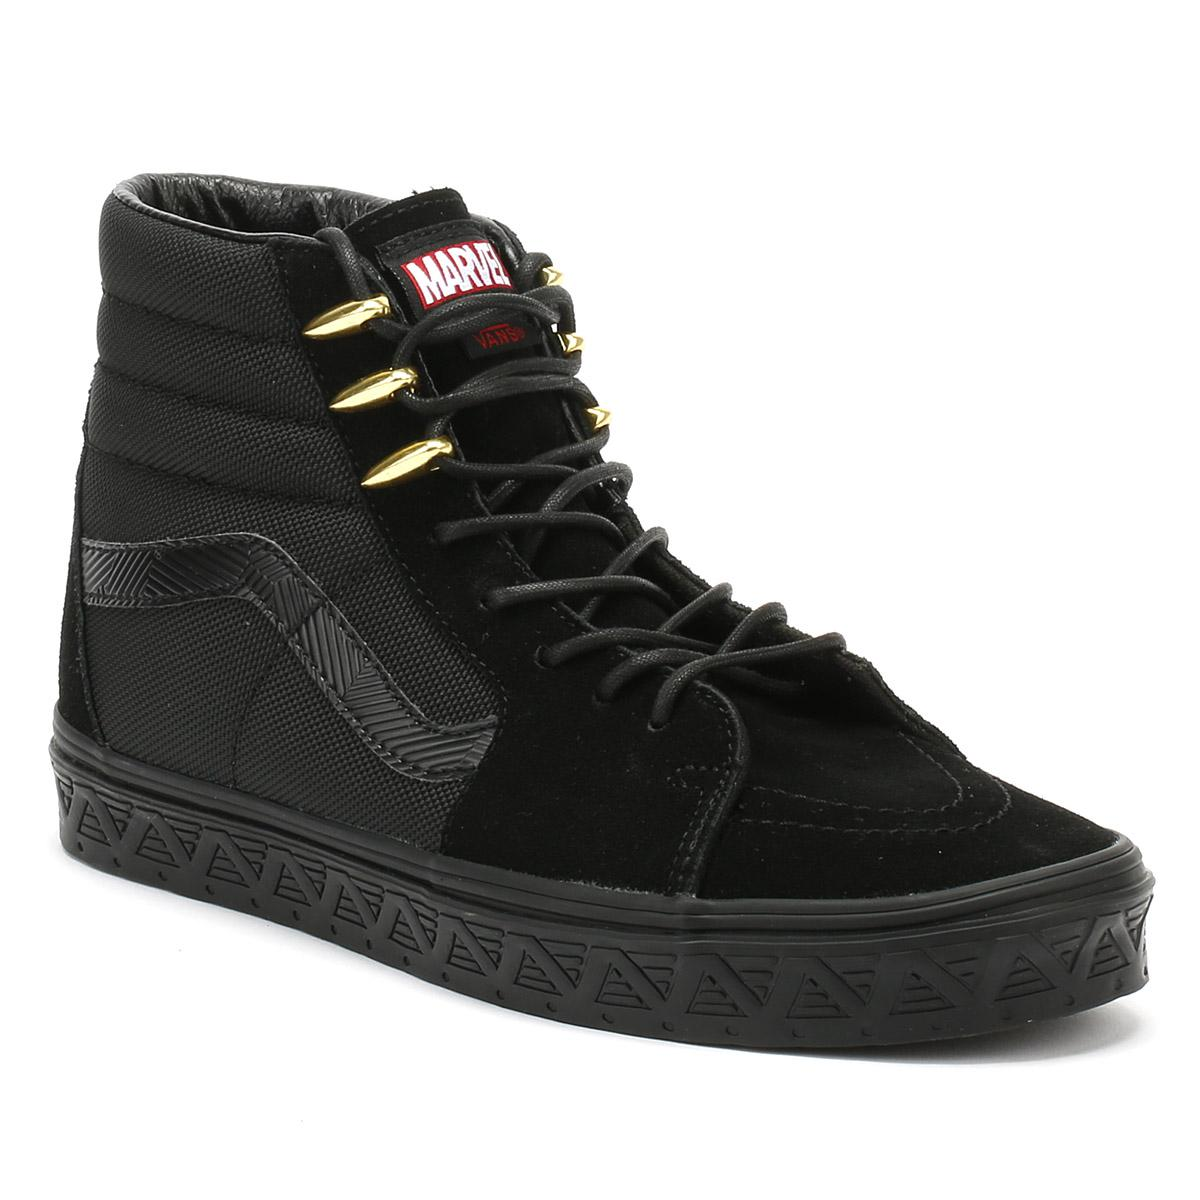 dfd8b90ac7 Vans Marvel Black Panther Sk8-hi Trainers in Black for Men - Lyst